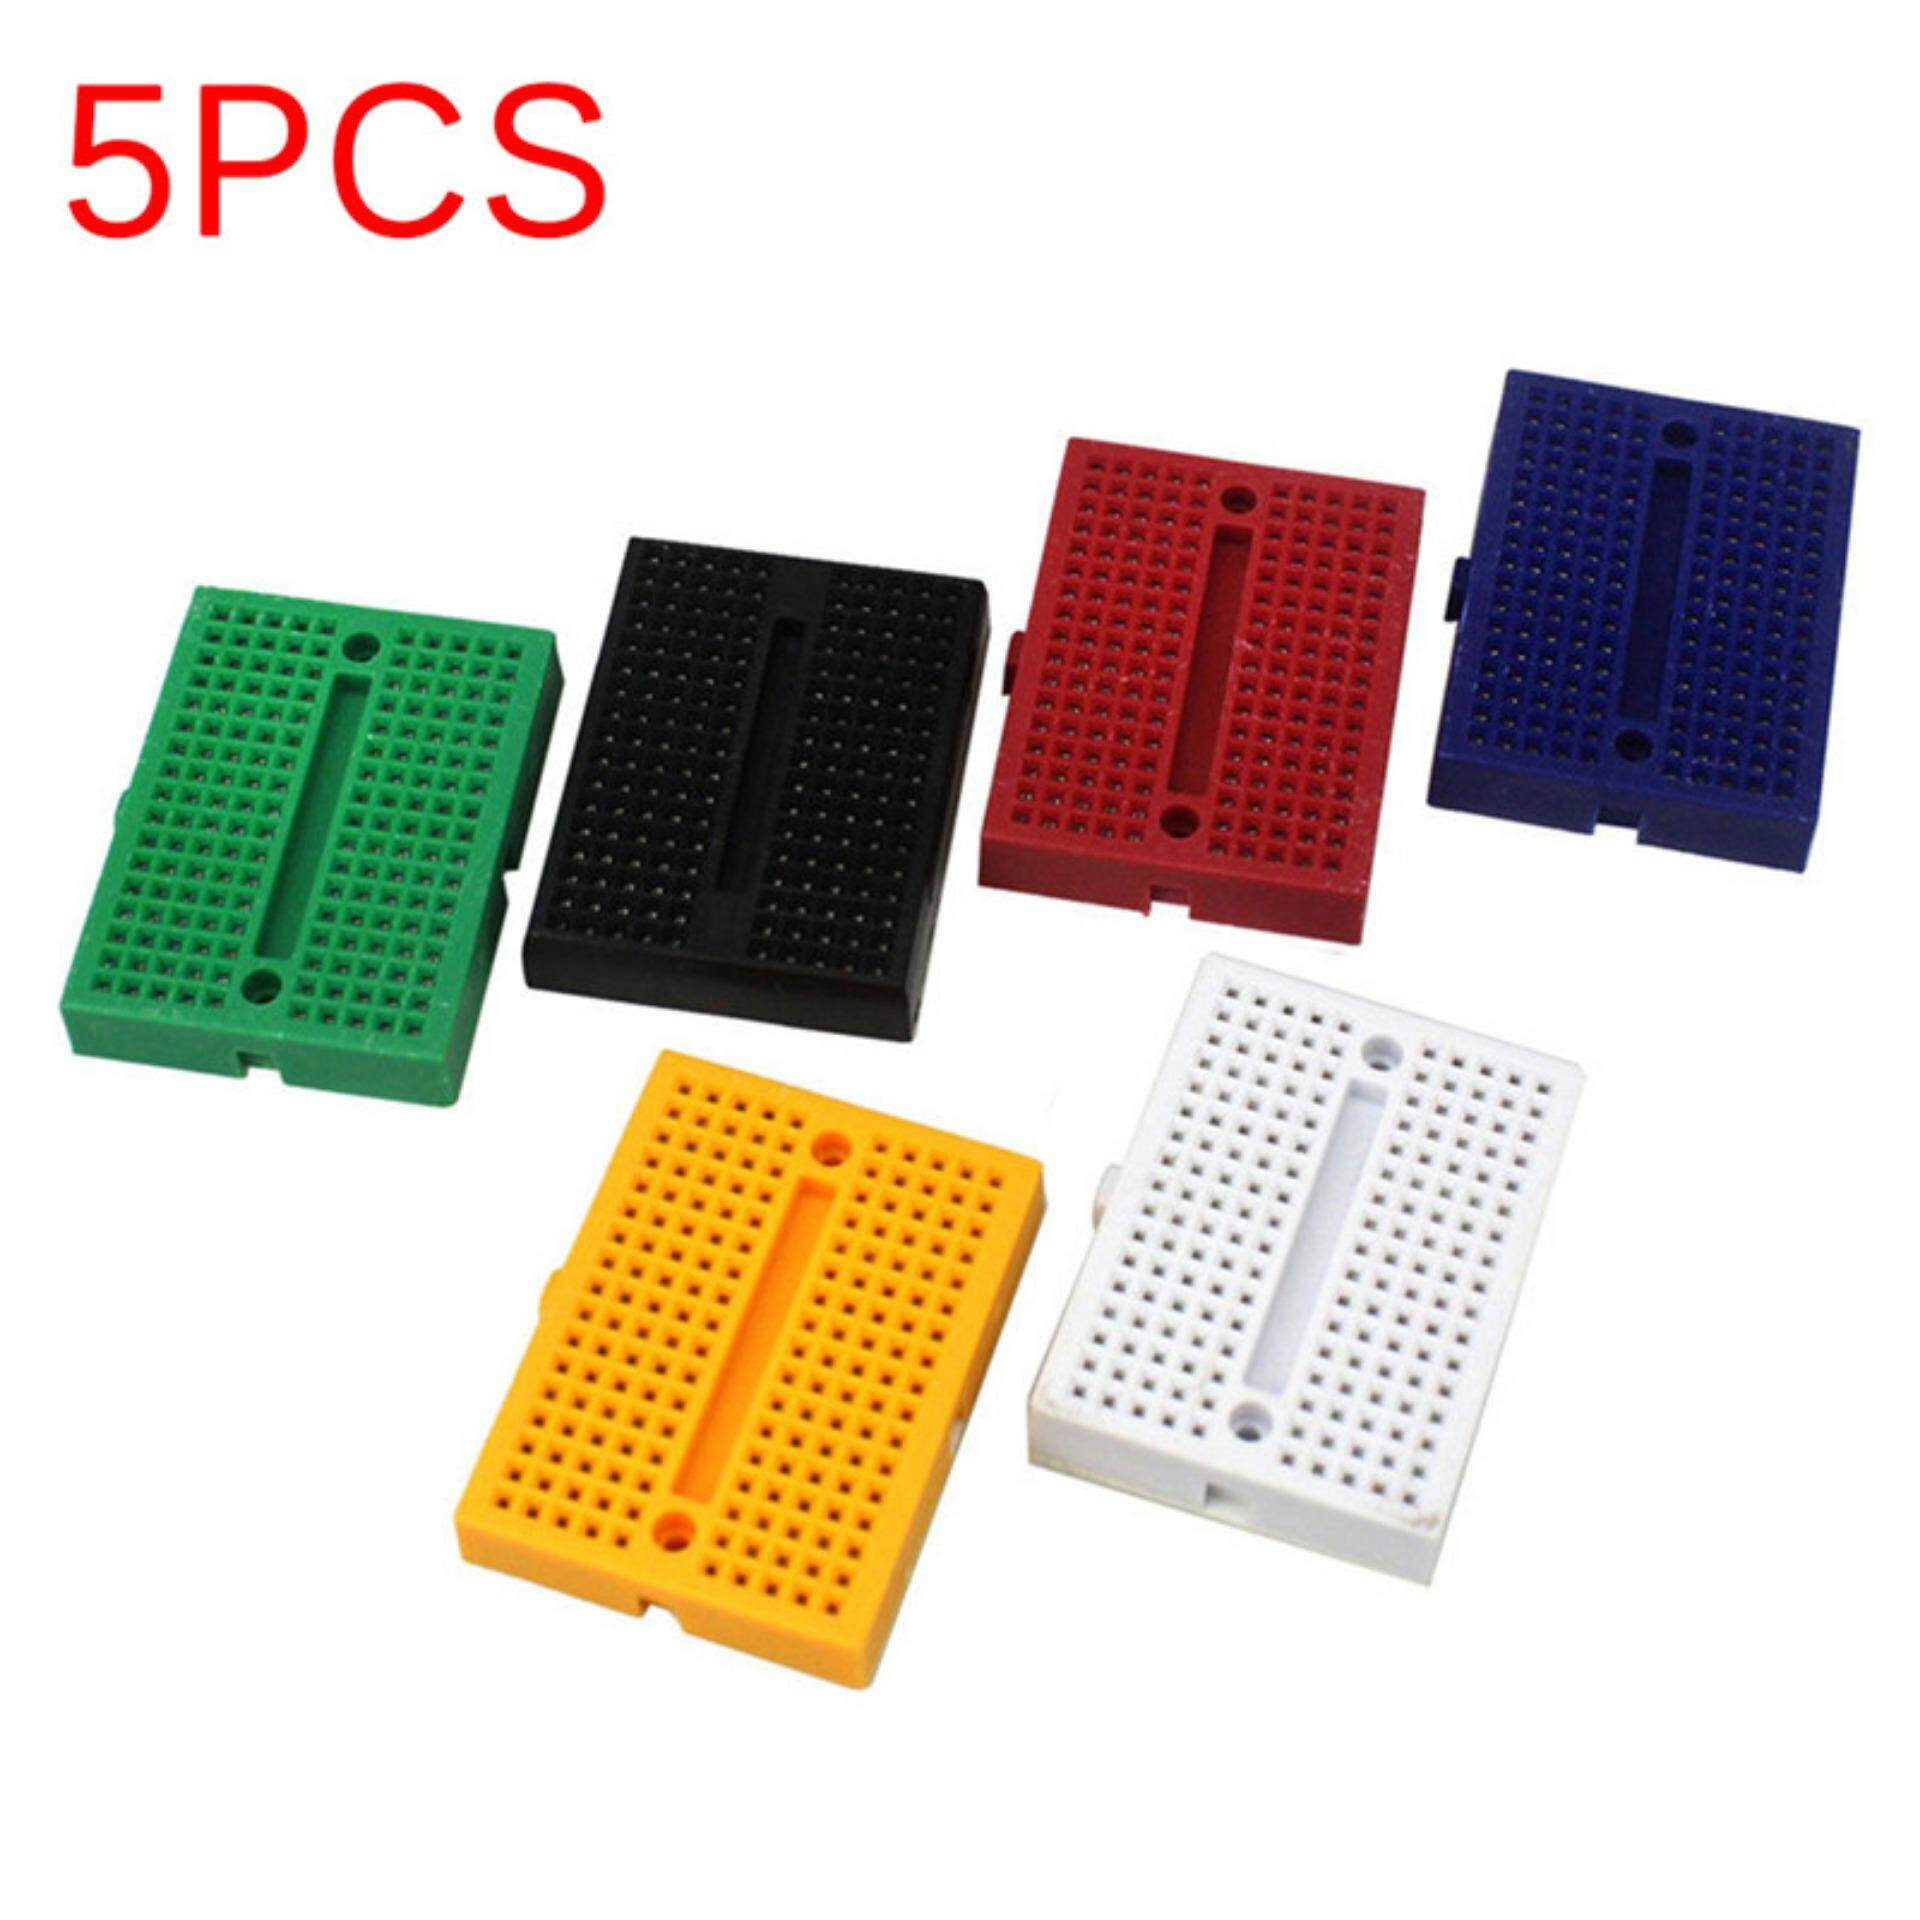 Features Big Family Solderless Prototype Pcb Breadboard 830 Points With 400 Tie And Matching Syb 170 Mini Board Plates Reusable Multicolor